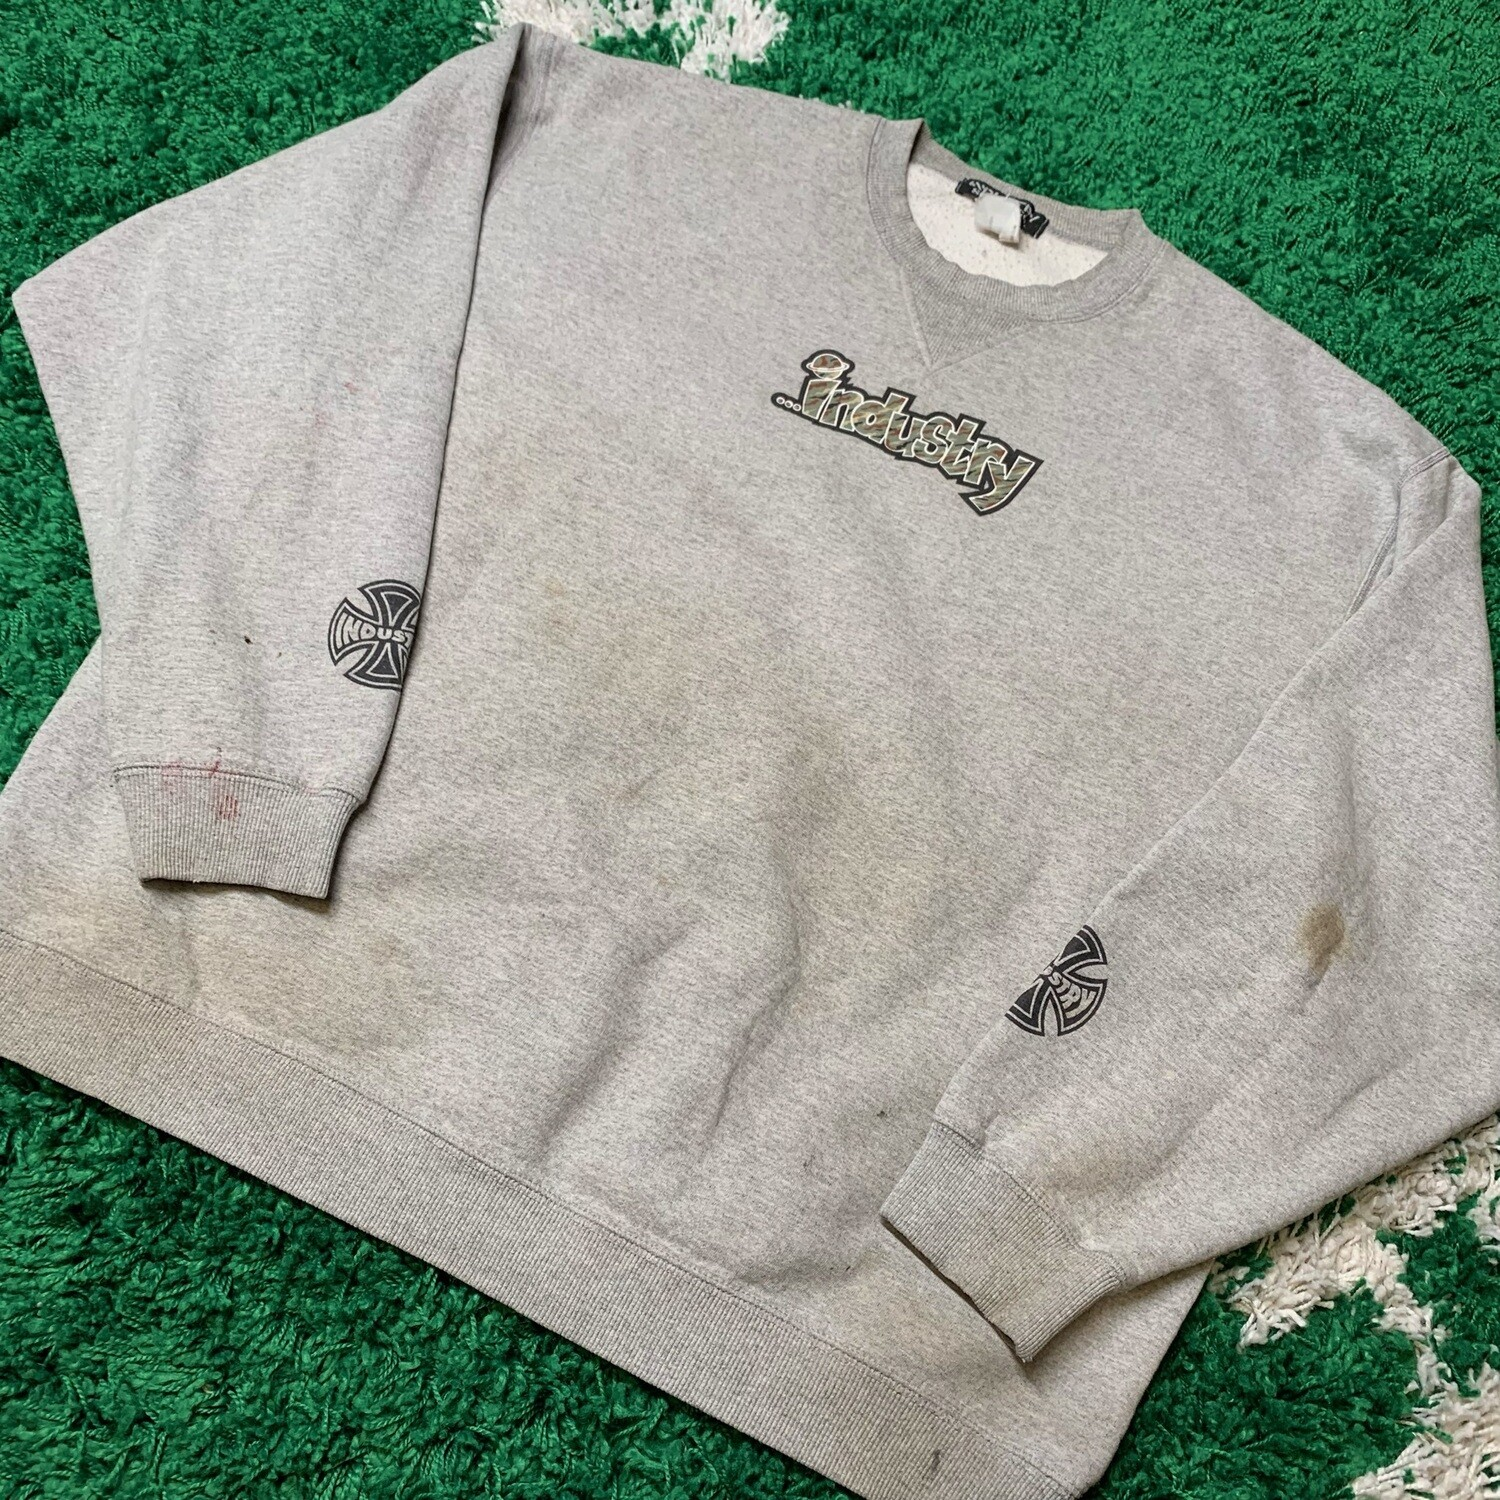 Industry Skate Sweater Size XL